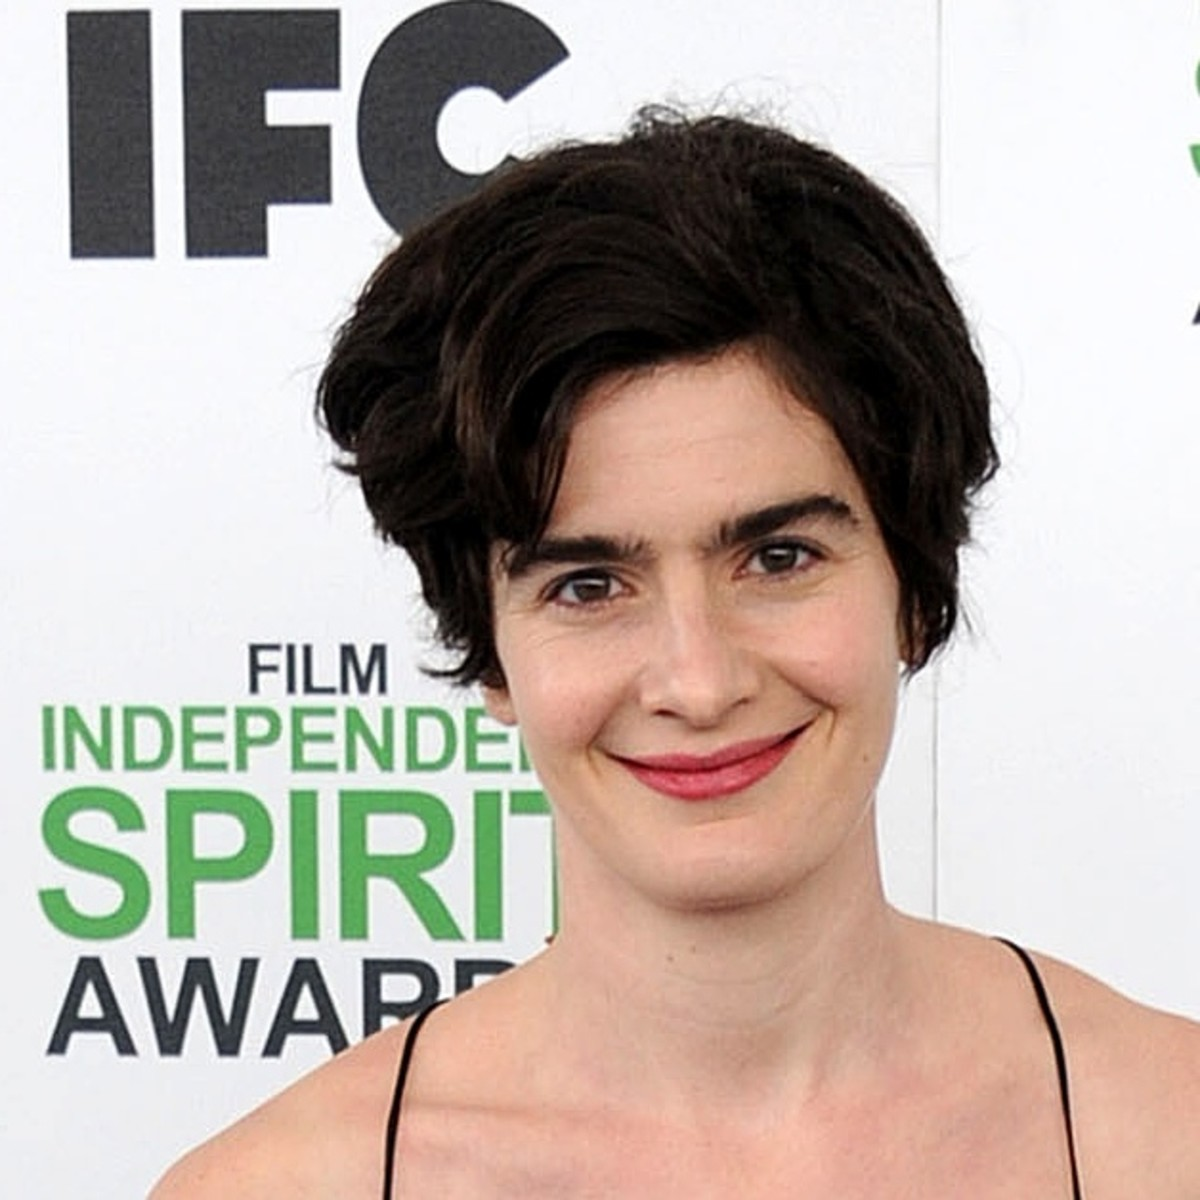 Images Gaby Hoffmann nude (78 photo), Sexy, Is a cute, Boobs, in bikini 2015